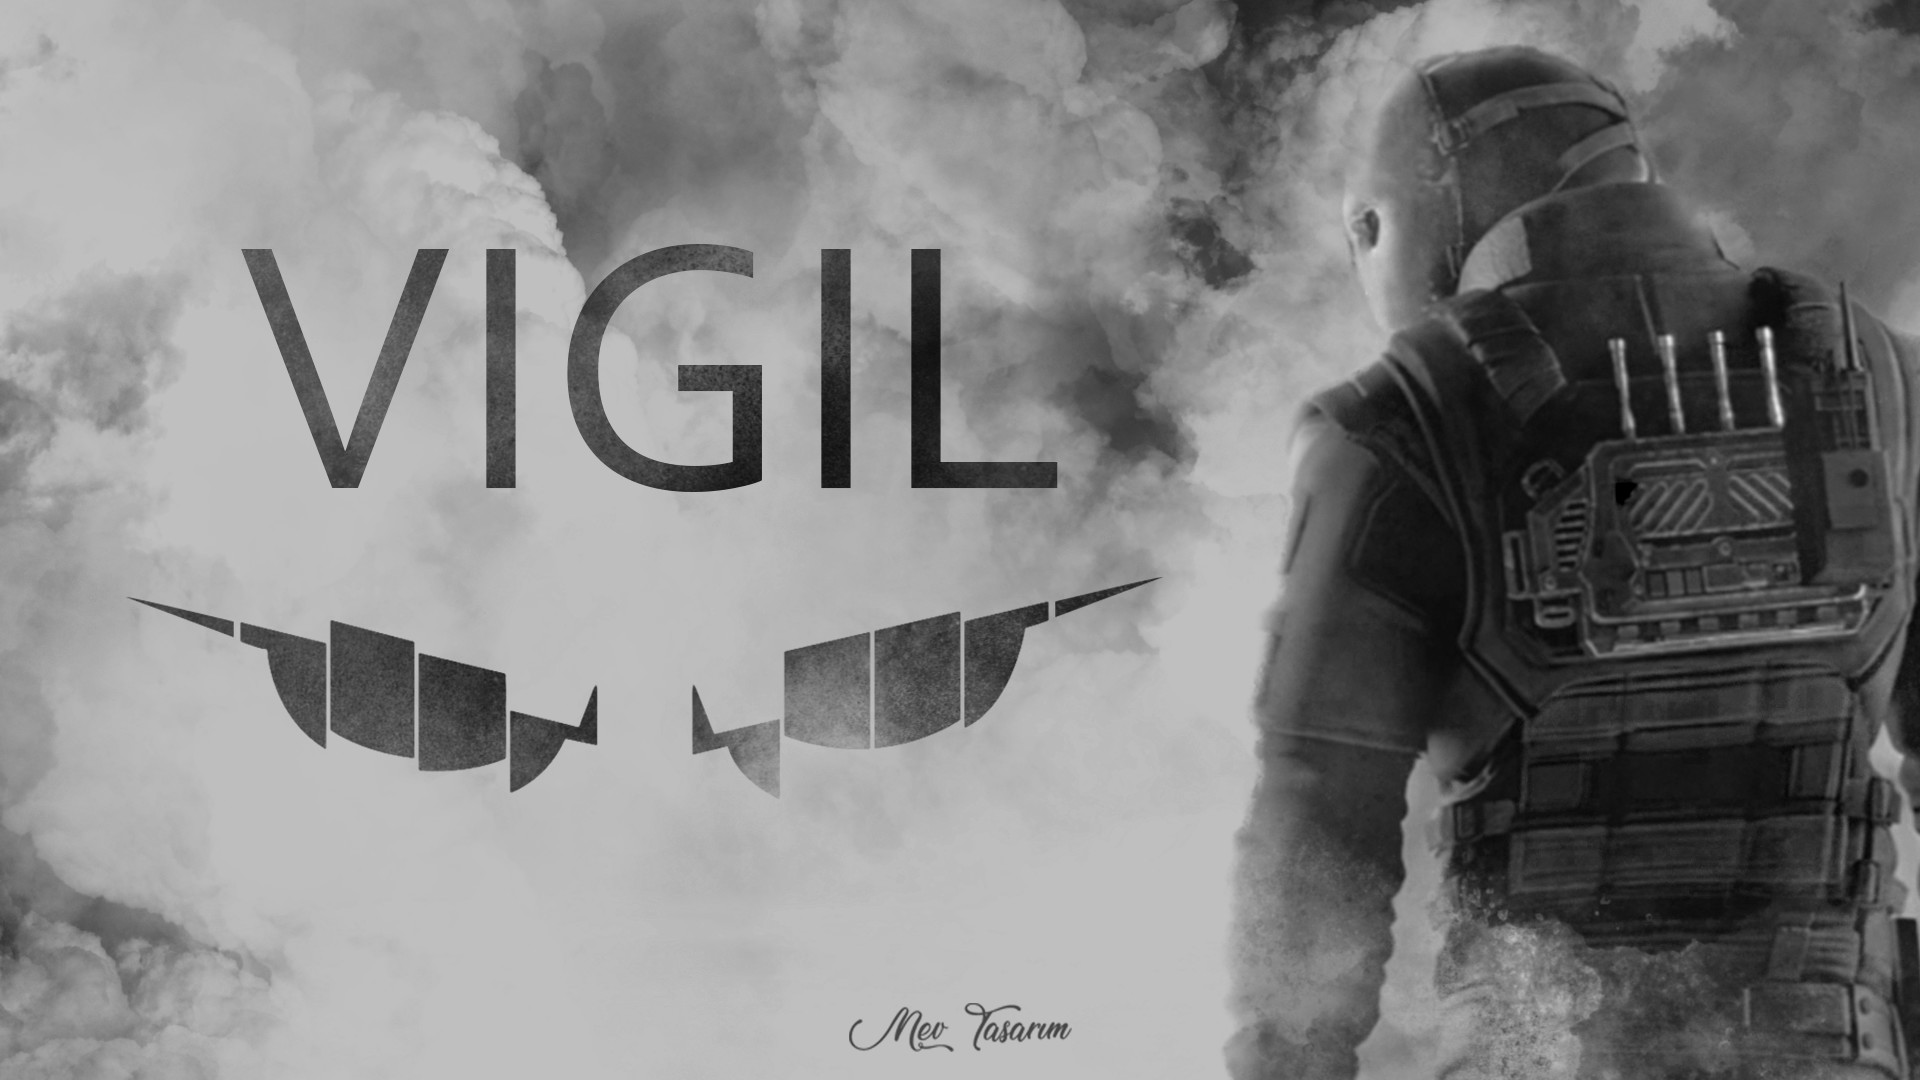 Mustafa eren vural rainbow six siege vigil wallpaper - Rainbow six siege vigil wallpaper ...